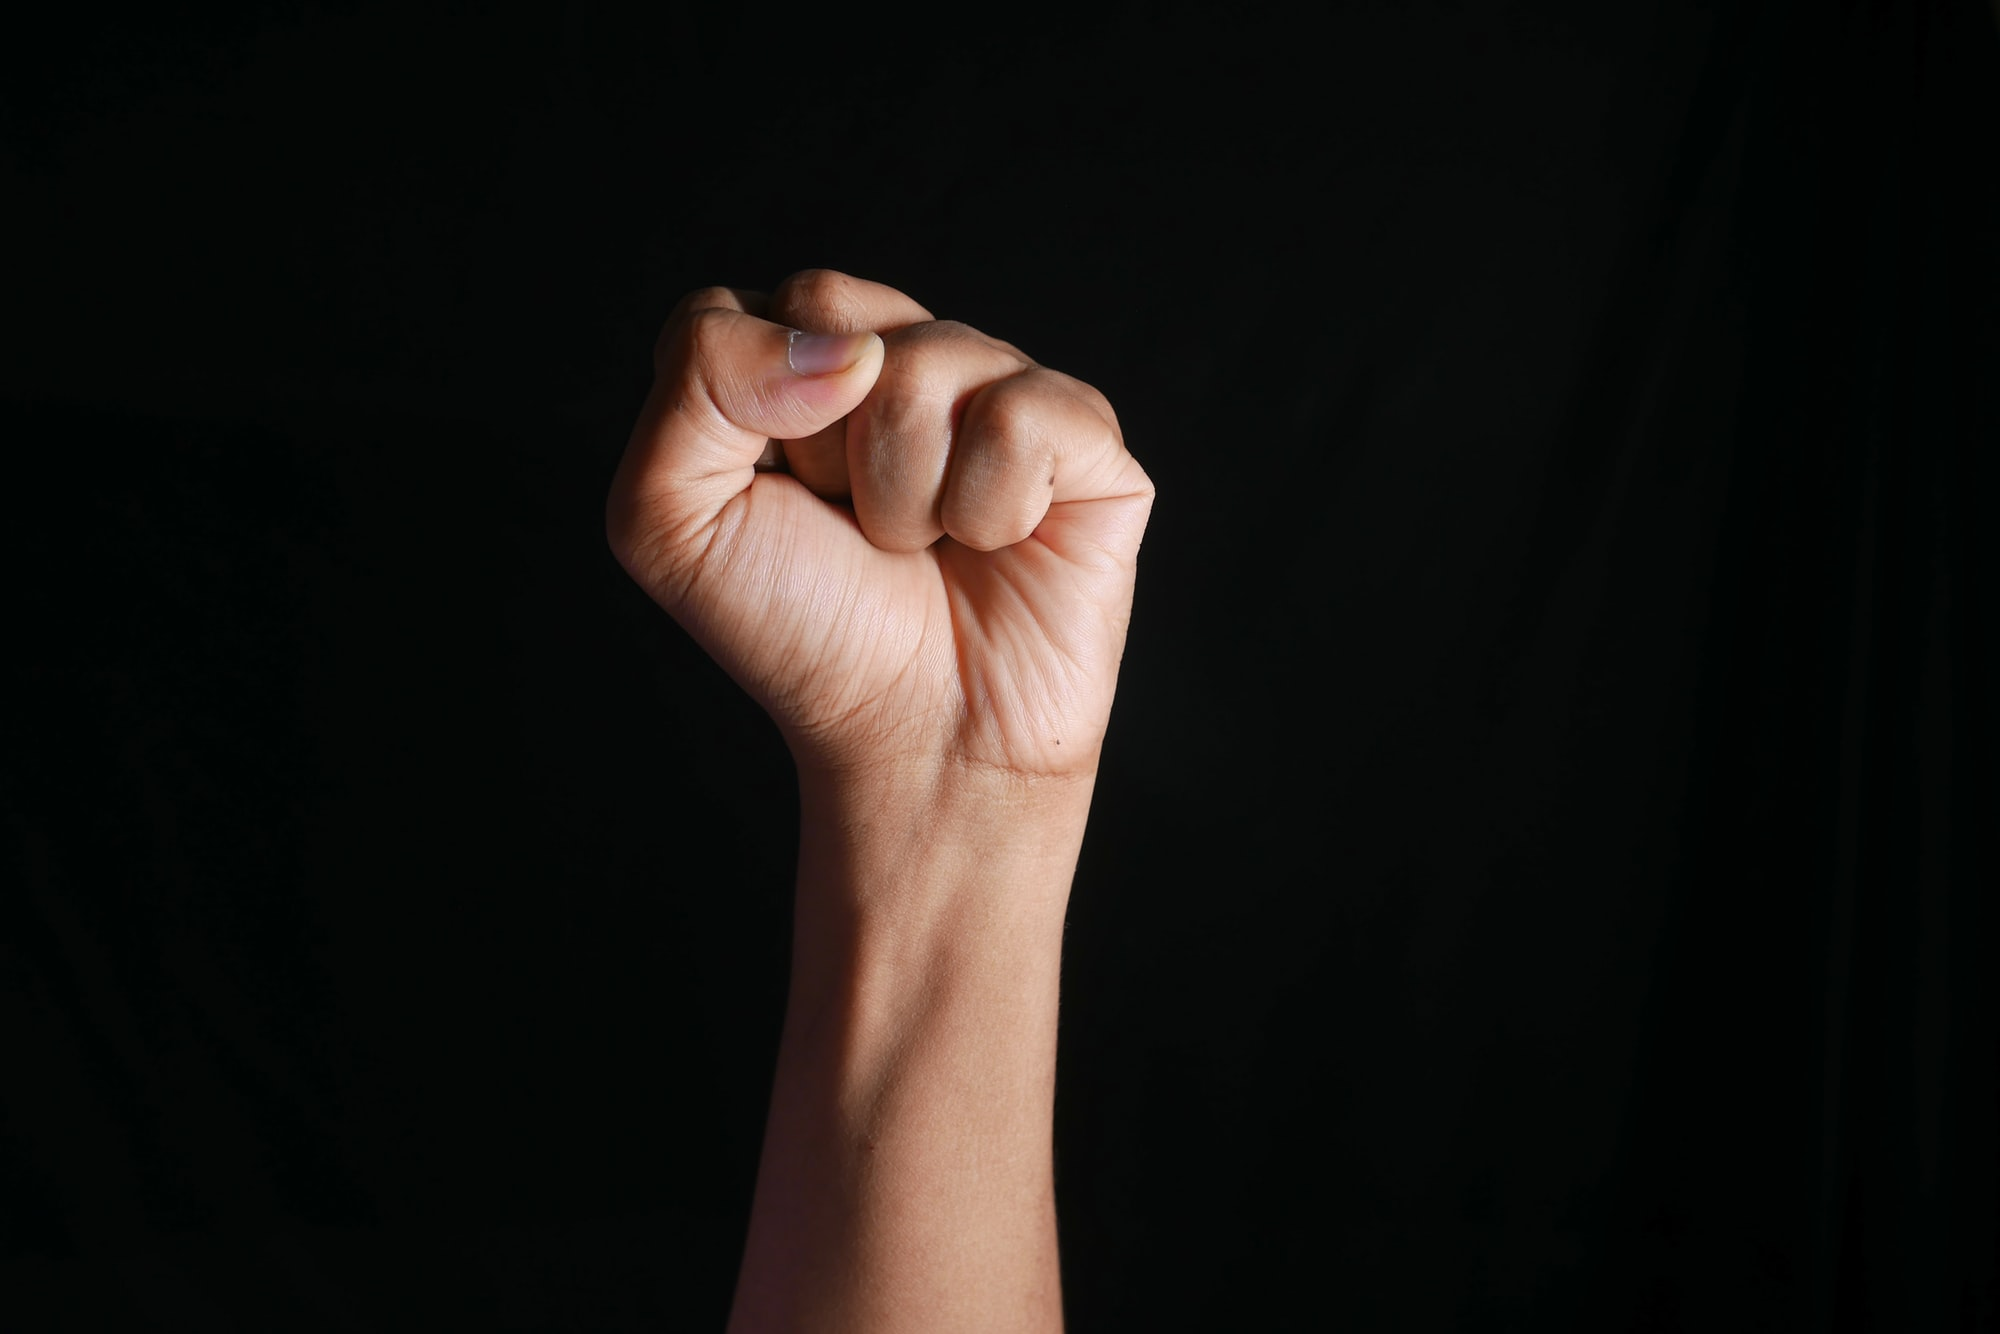 hands clenched power strength isolated on black ,